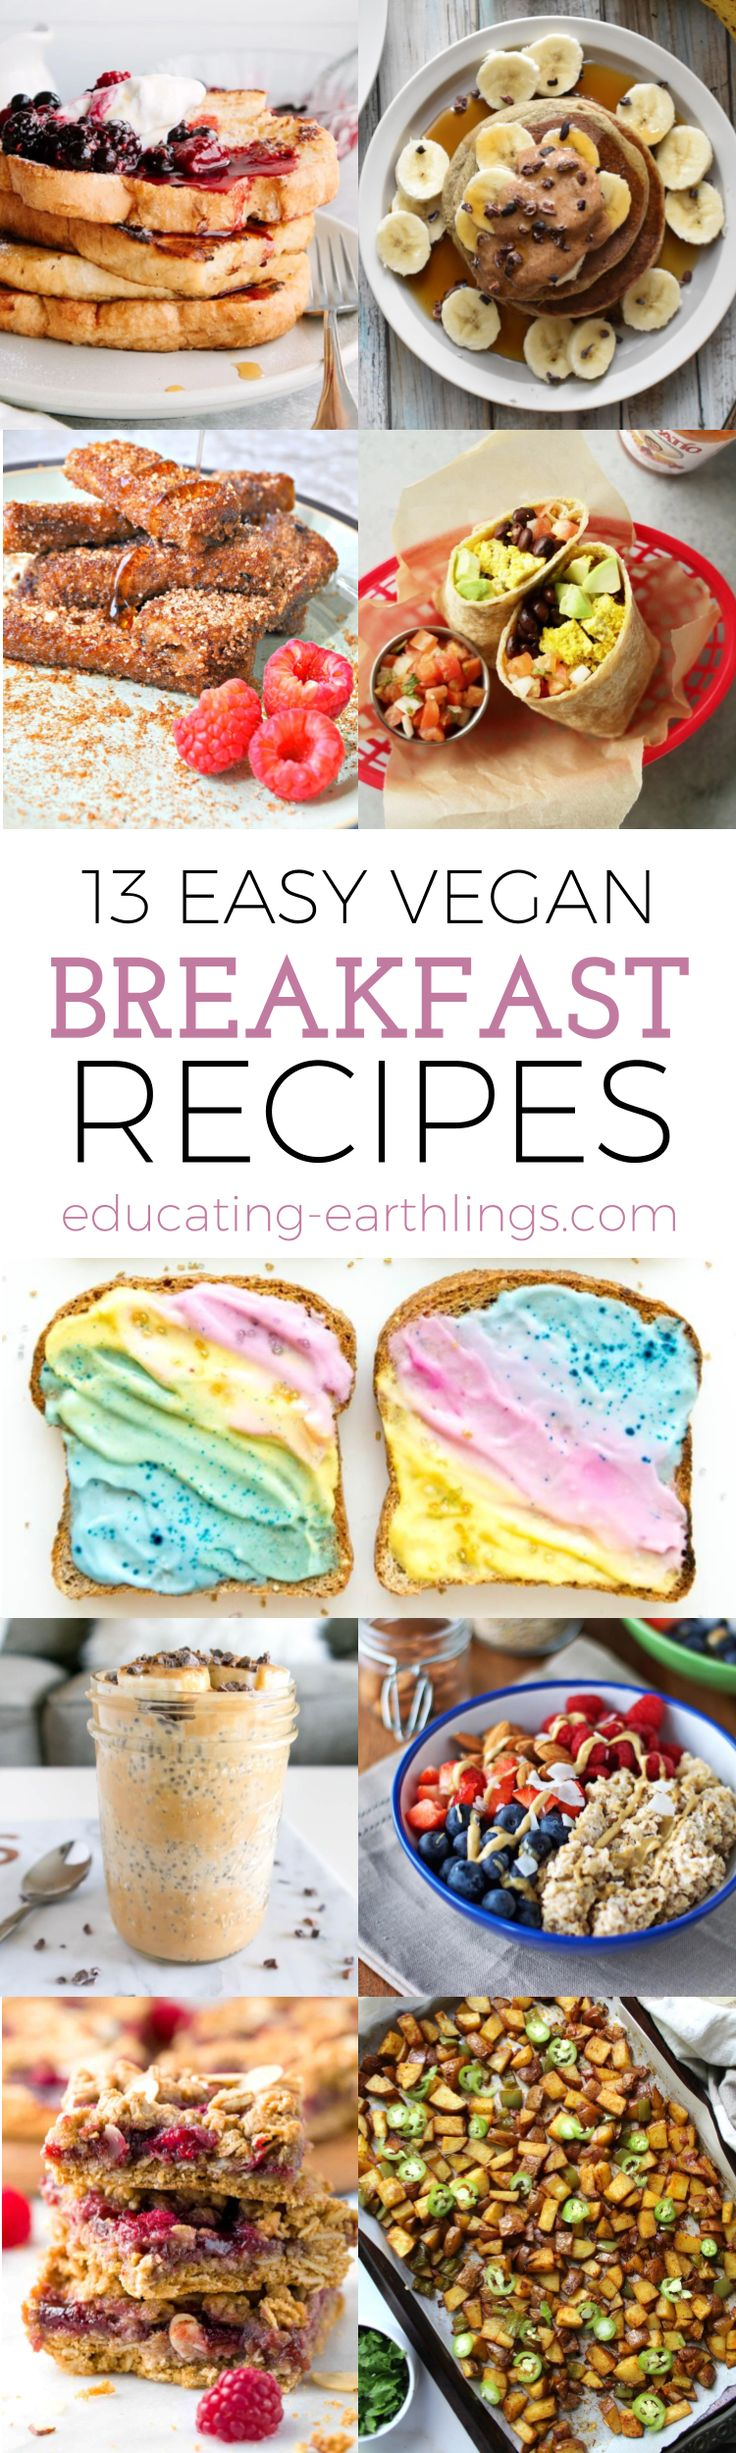 12 easy vegan breakfast recipes